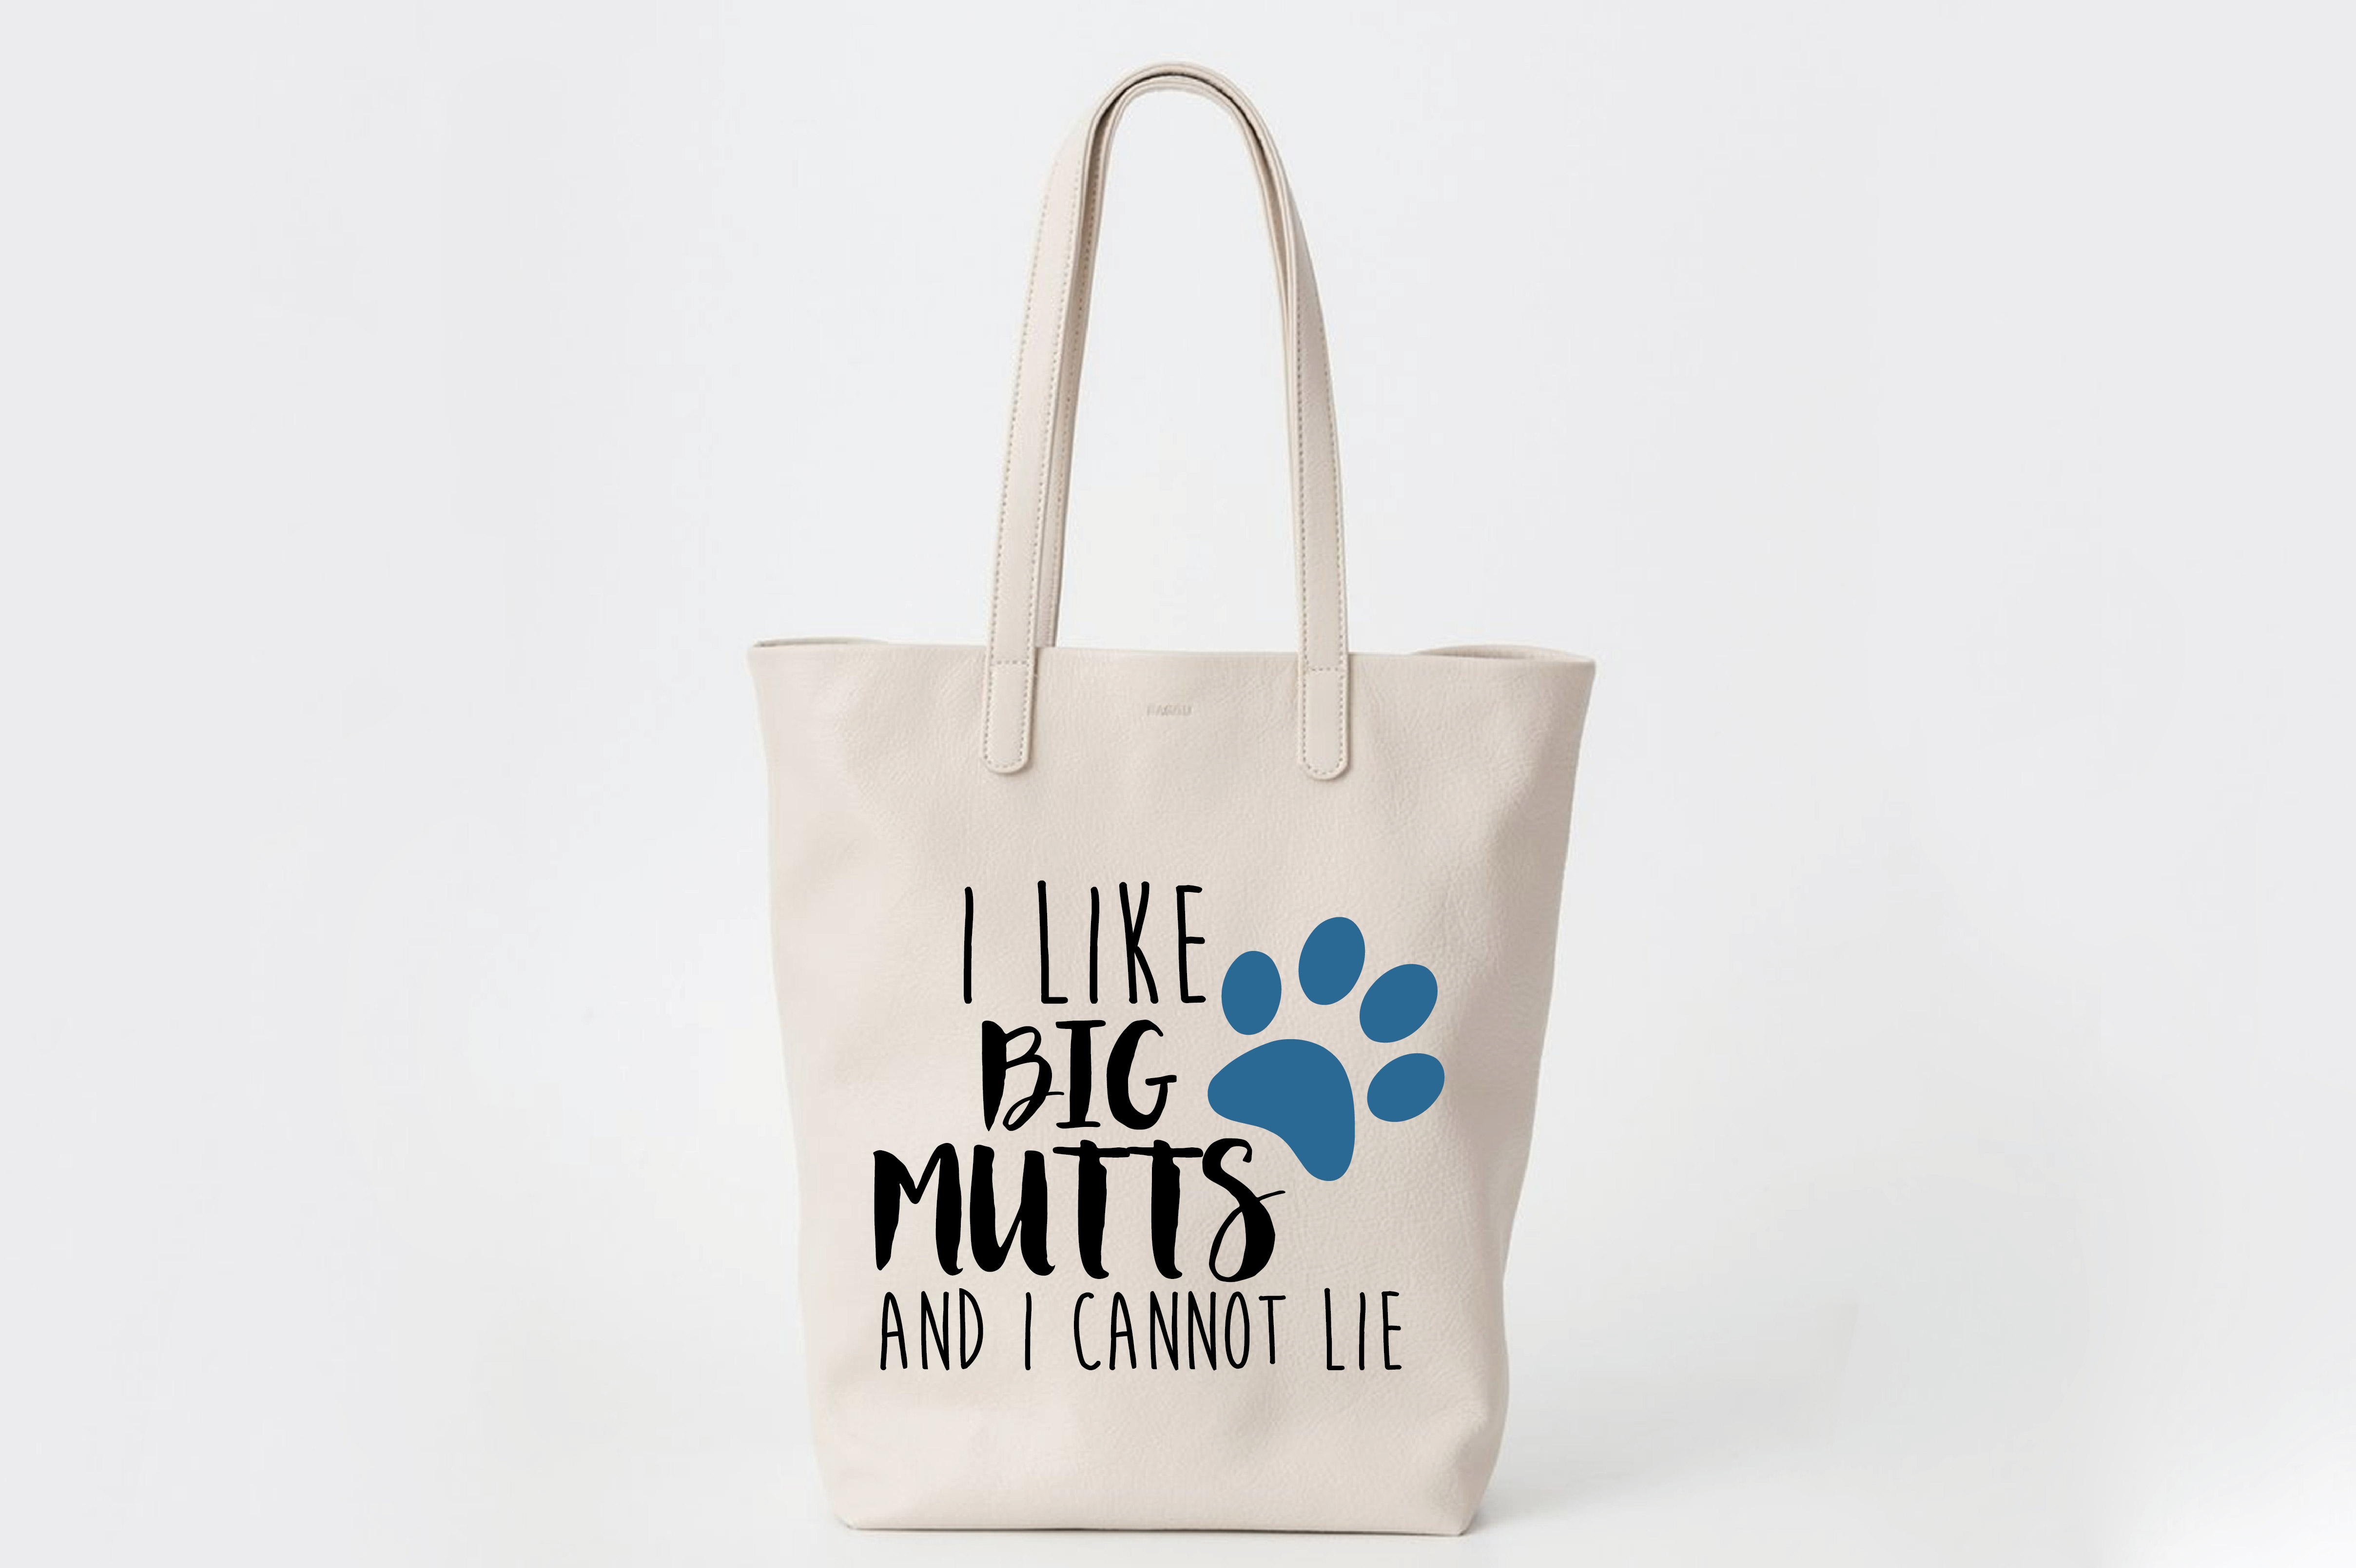 I Like Big Mutts and I Cannot Lie SVG Cut File - DXF - EPS example image 2